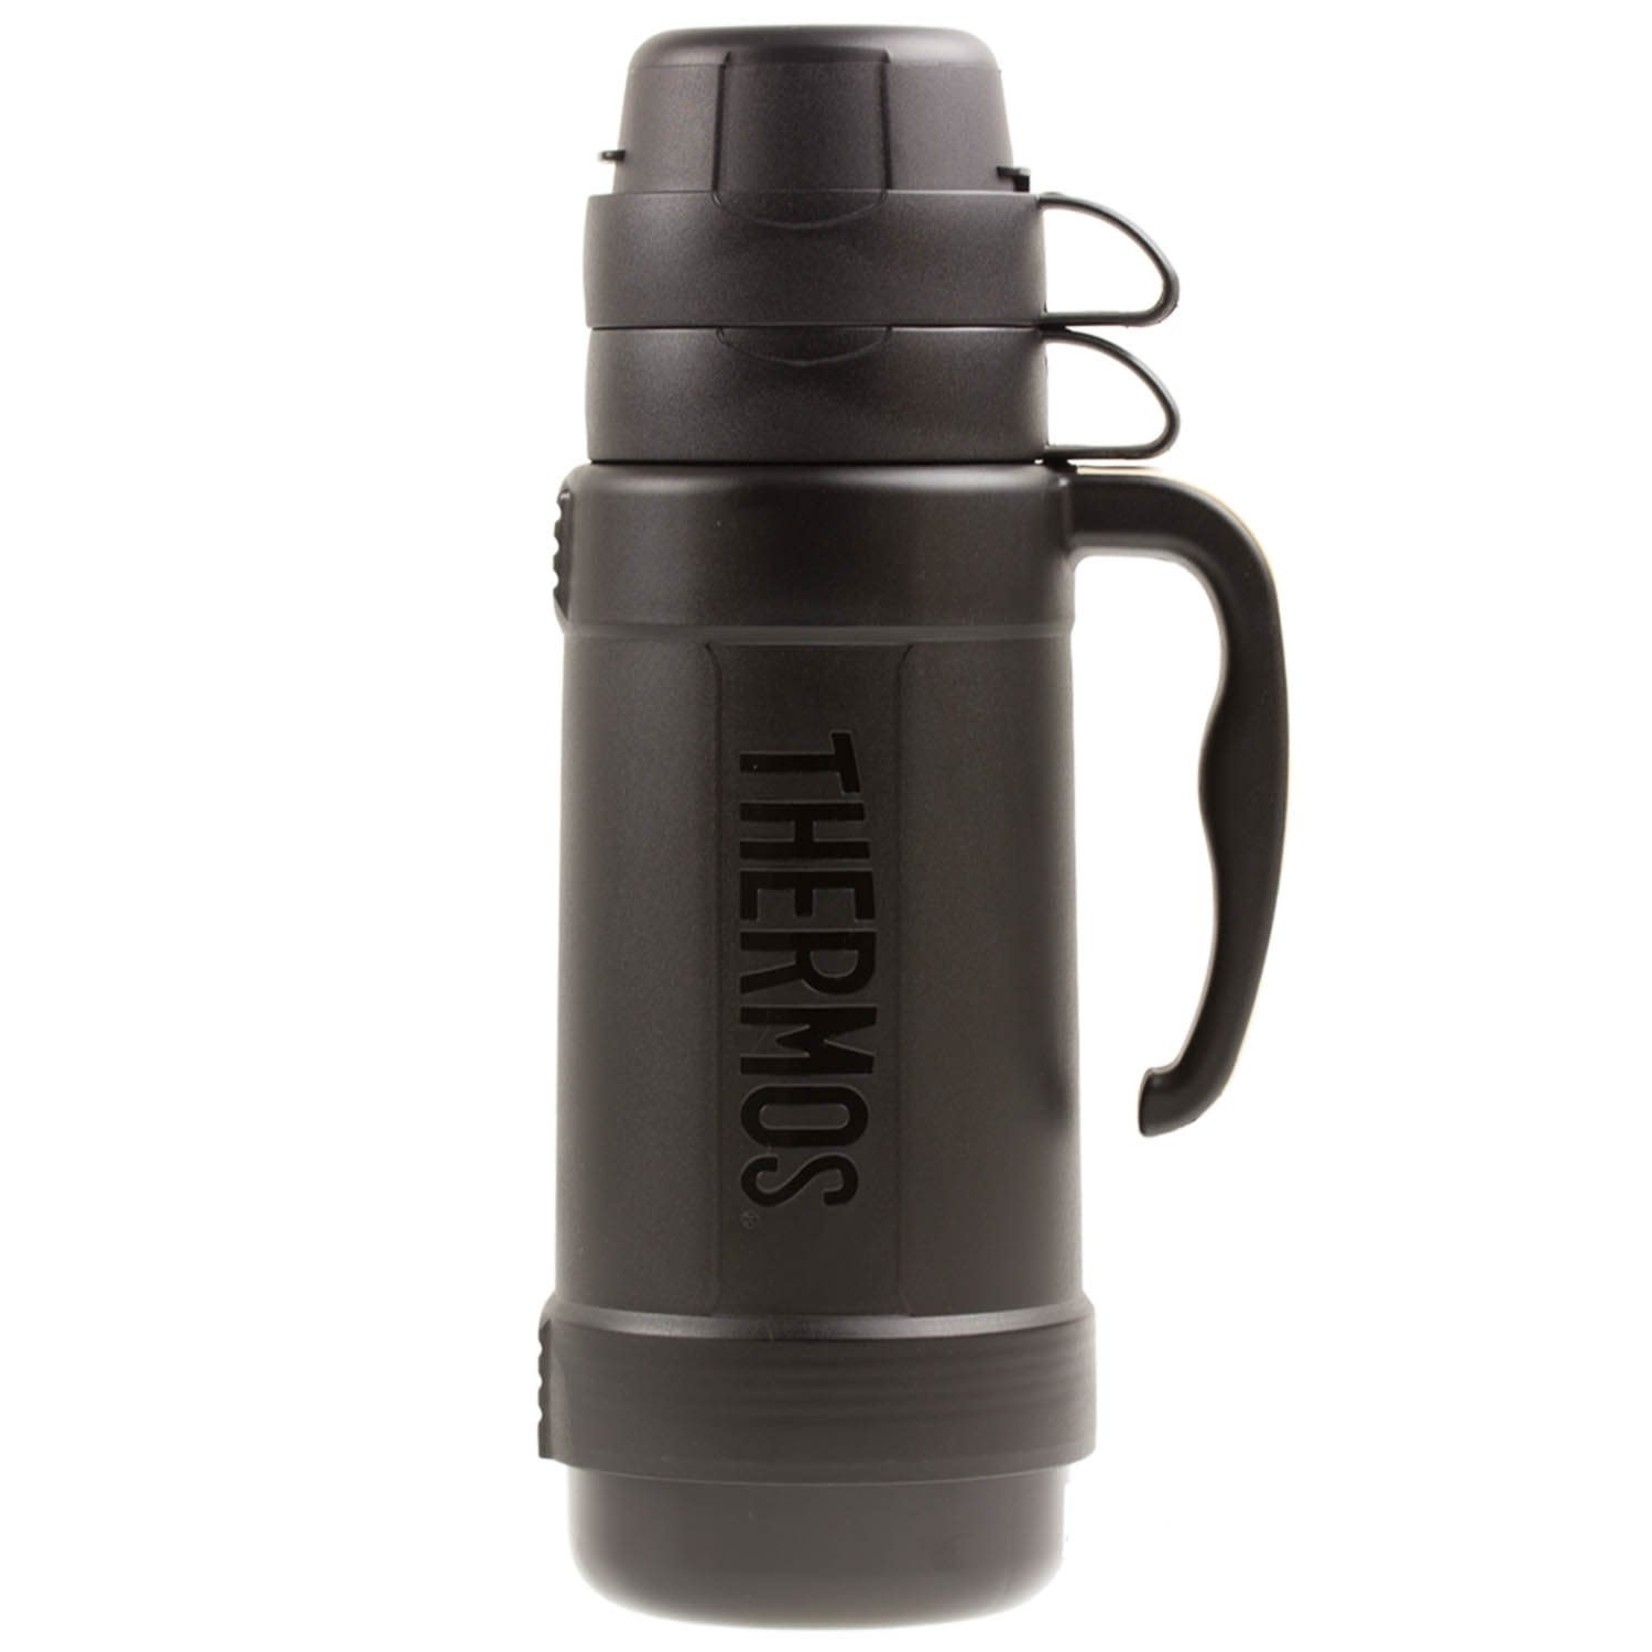 Thermos THERMOS 1 LITRE FLASK WITH SOFT GRIP HANDLE BLACK